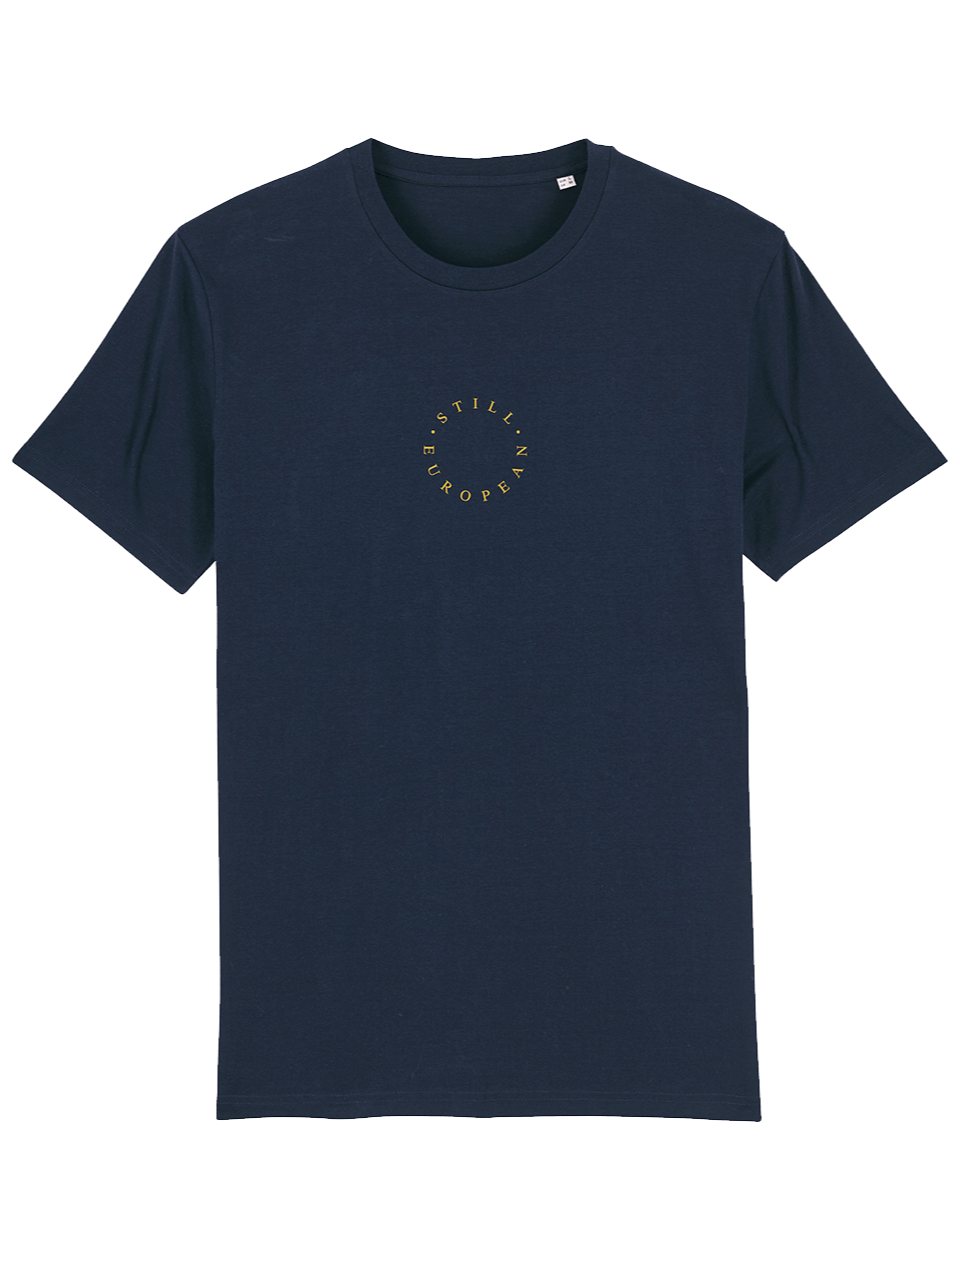 Still European Tee CLOTHING BIRDSONG